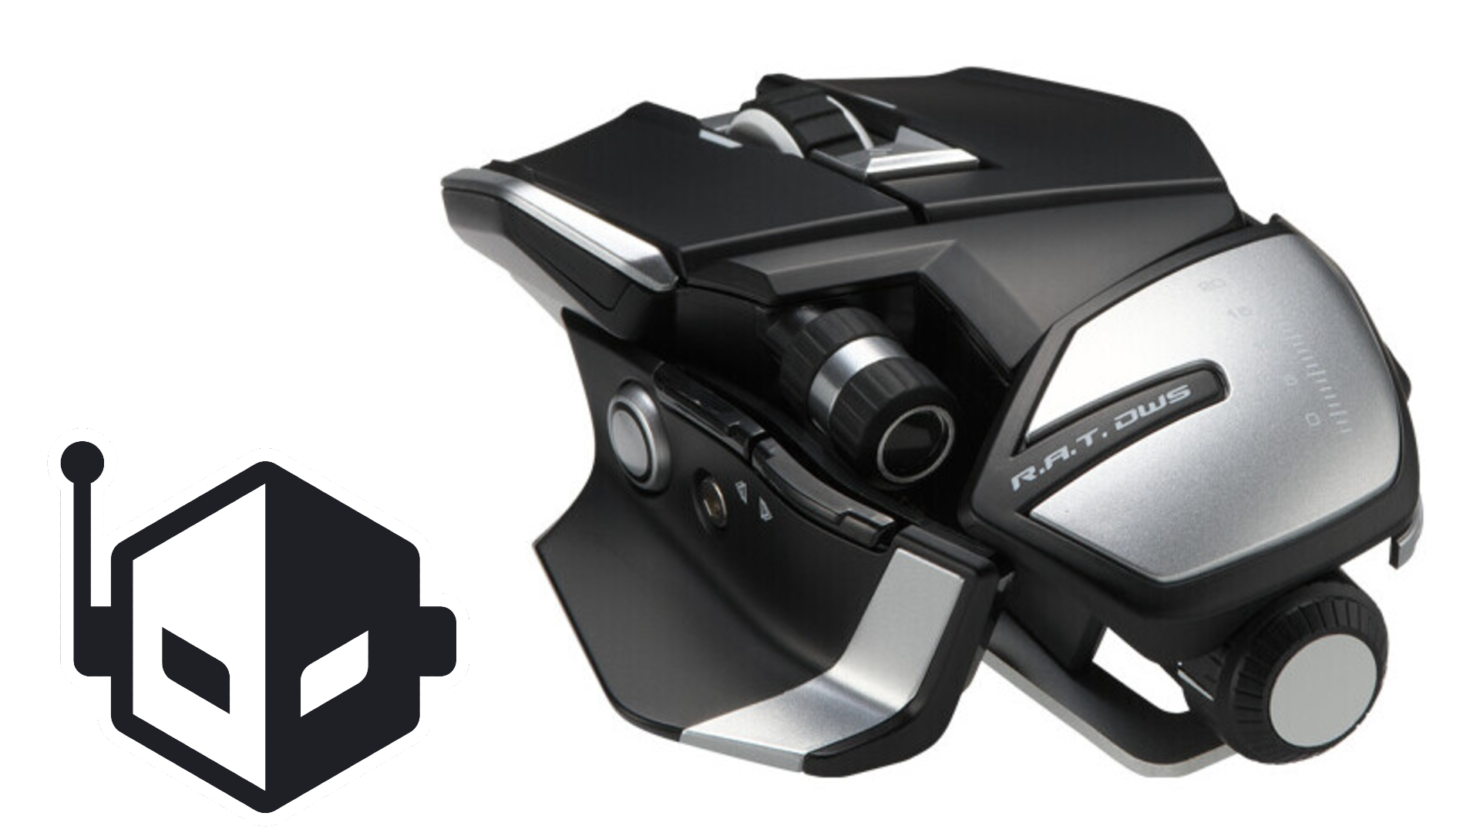 mad-catz-introduces-the-ra.t-dws-gaming-mouse